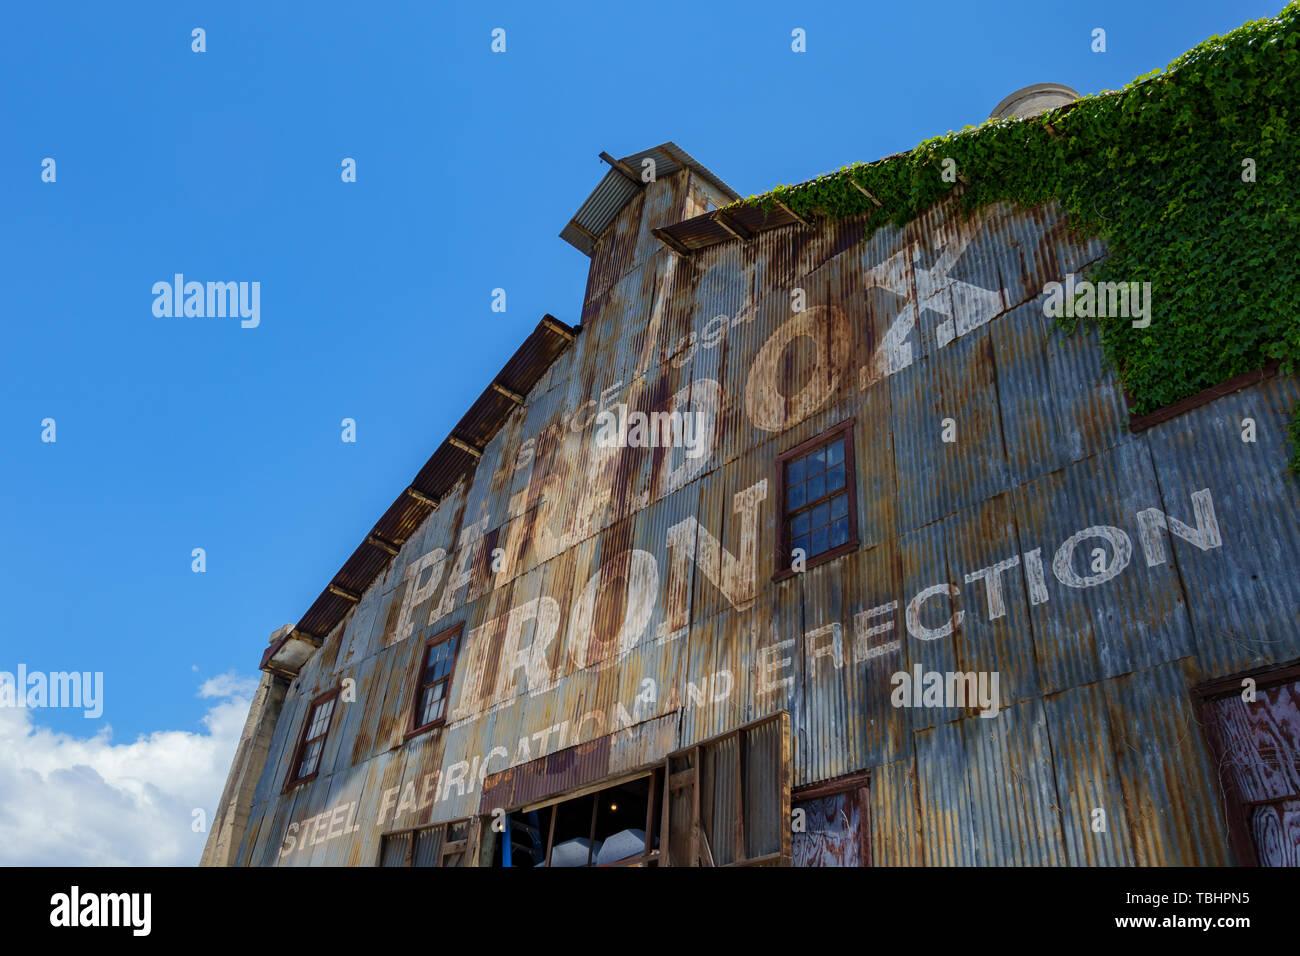 Los Angeles, MAY 11: Exterior view of the old Paradox Iron building on MAY 11, 2019 at Los Angeles, California Stock Photo